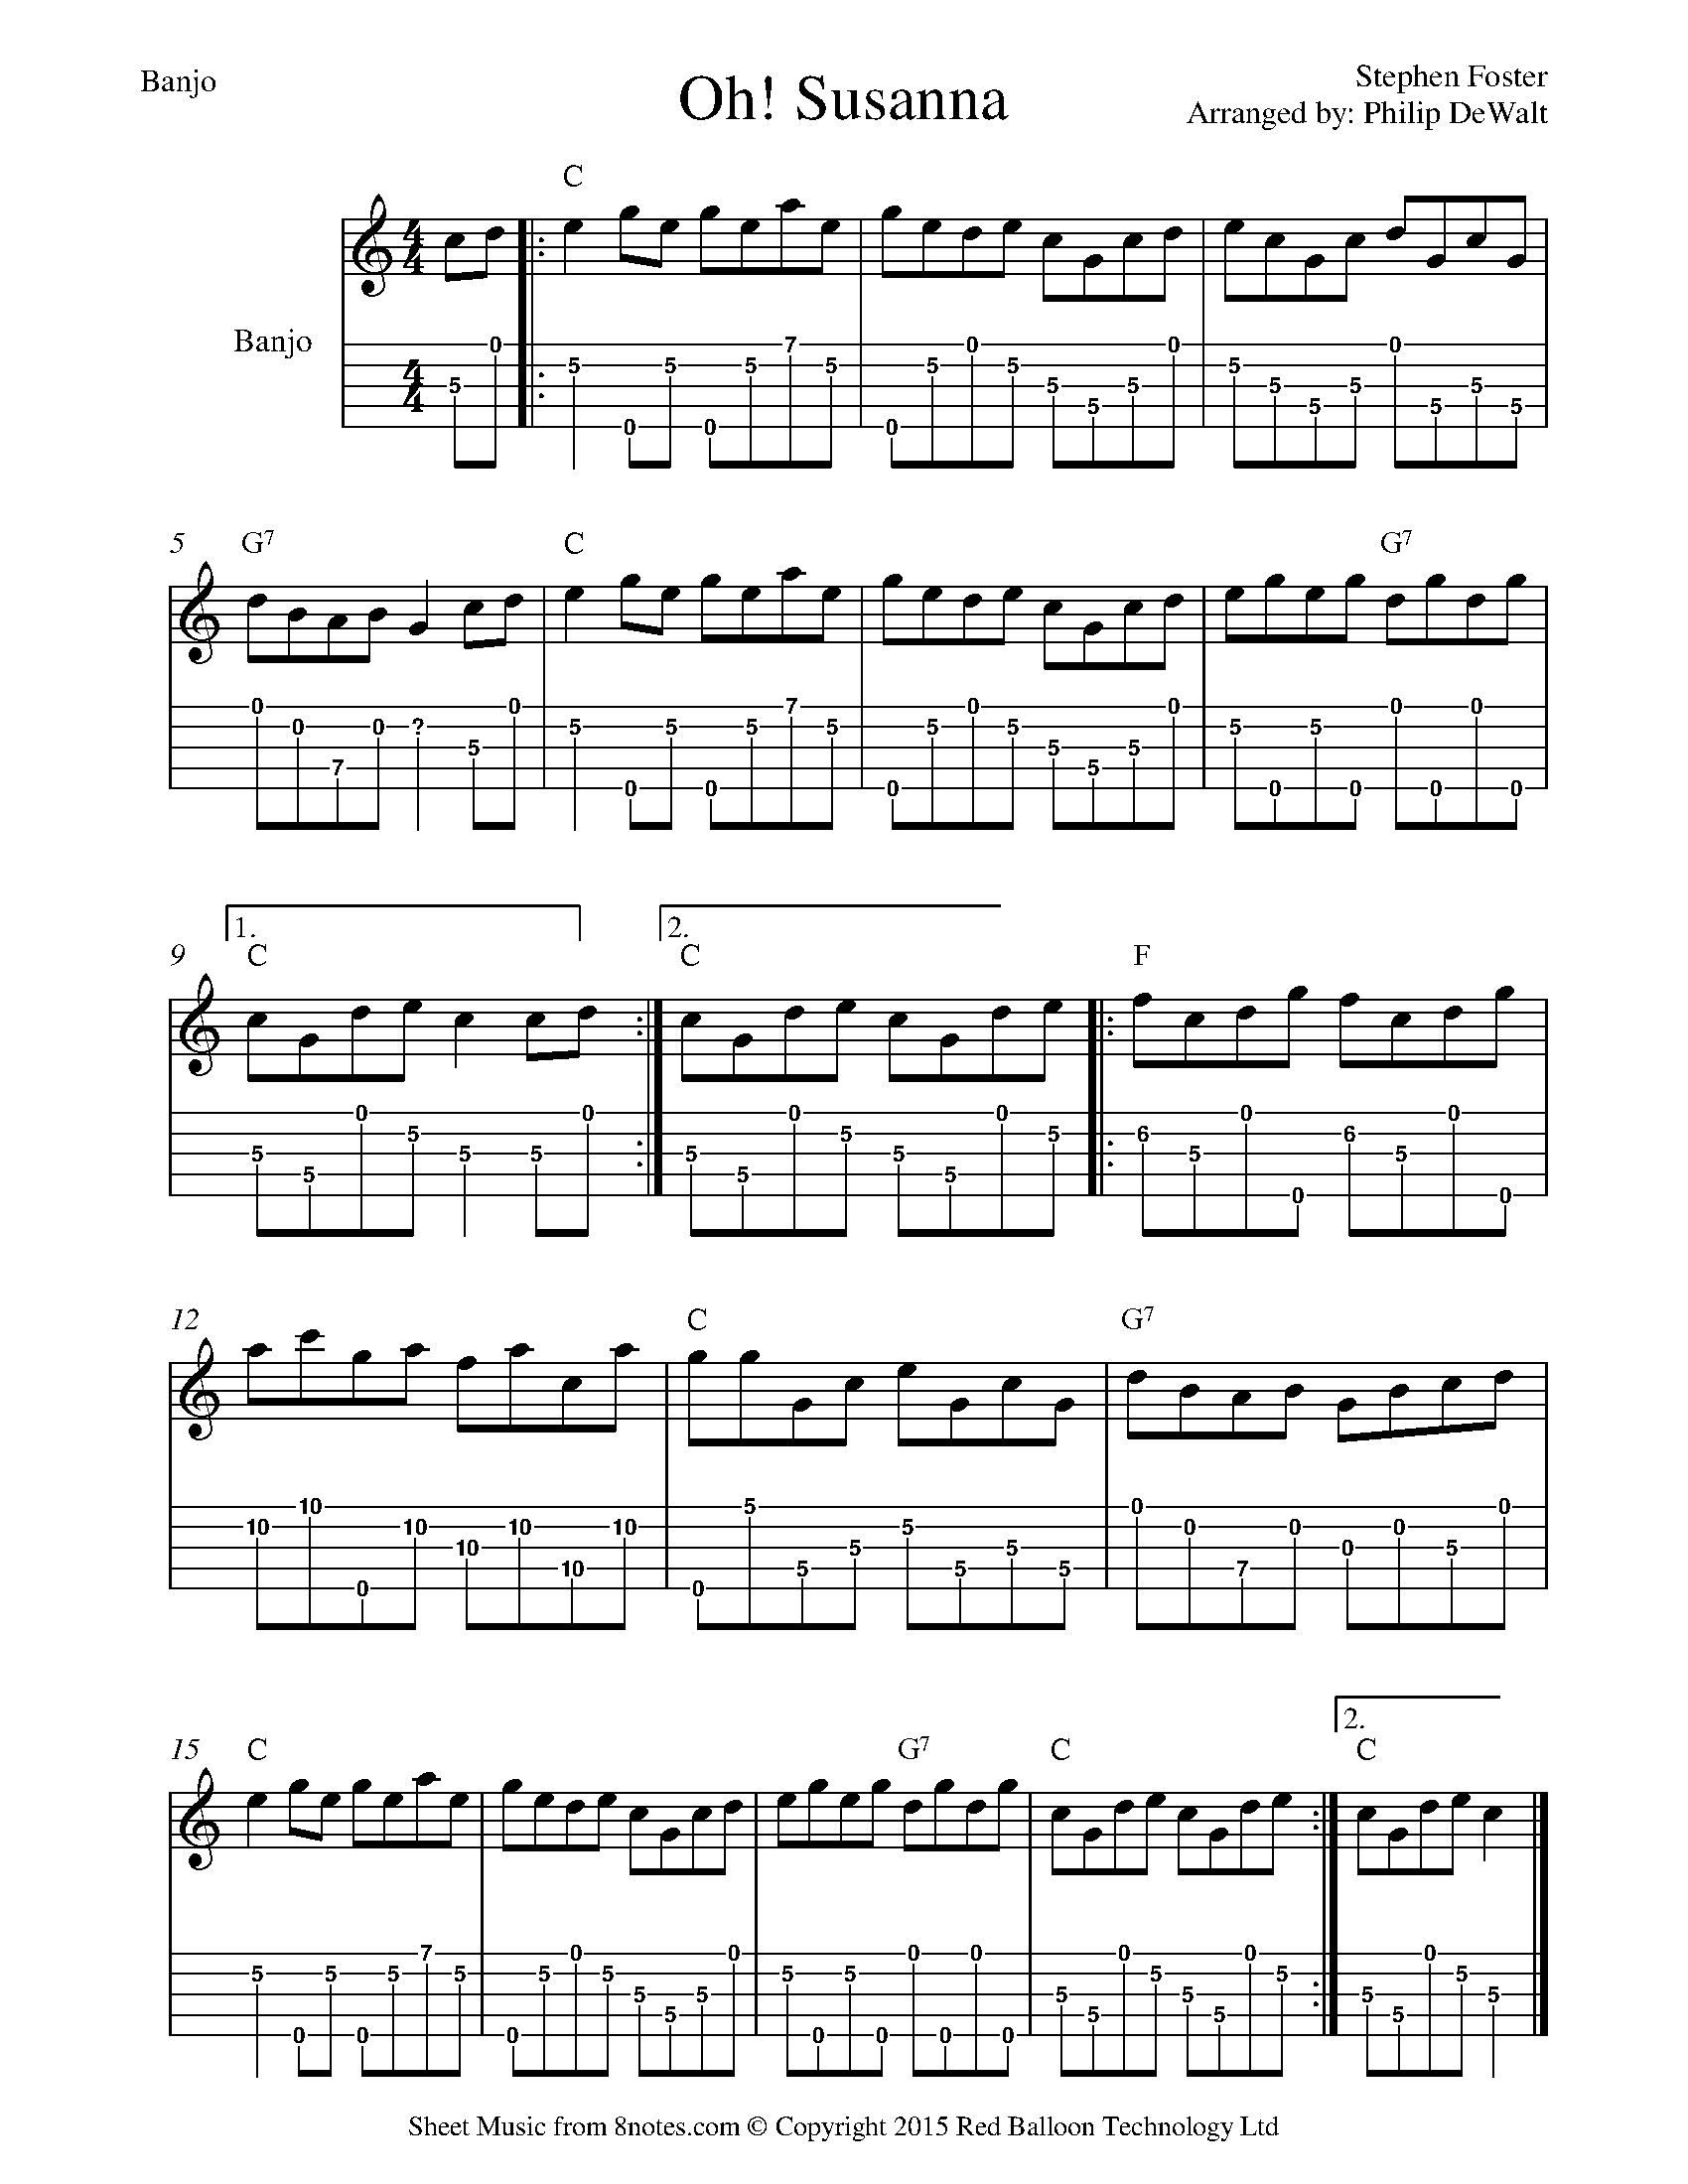 stephen foster - oh susanna sheet music for banjo - 8notes.com  8notes